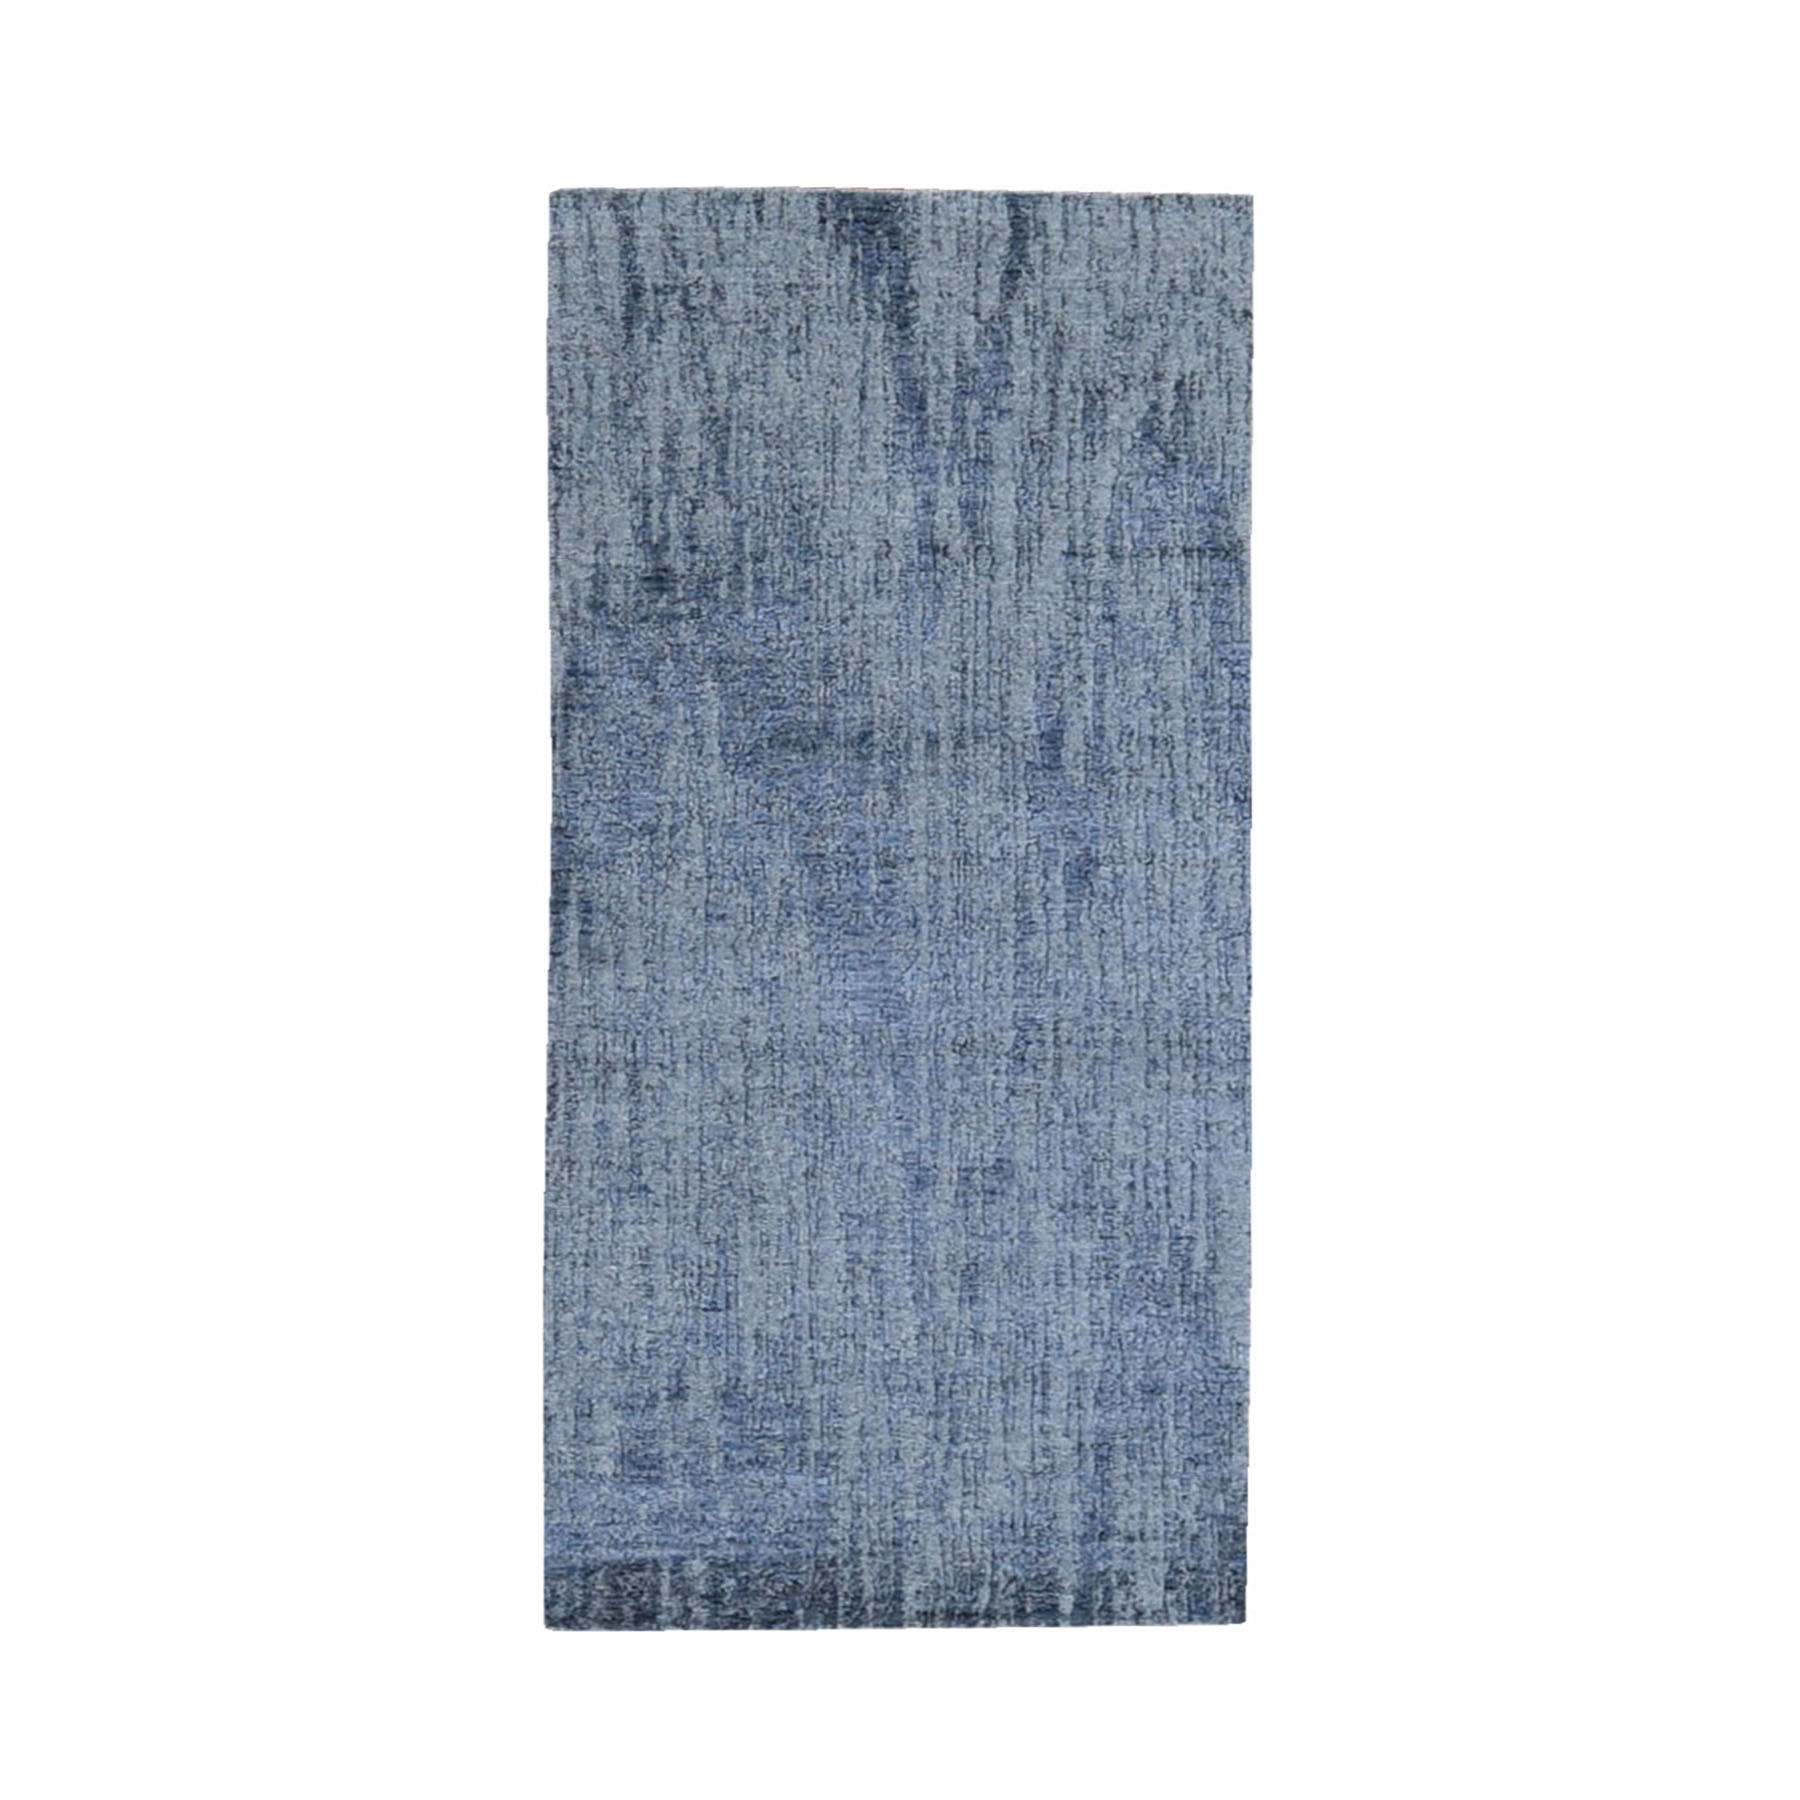 Mid Century Modern Collection Hand Loomed Grey Rug No: 1119226